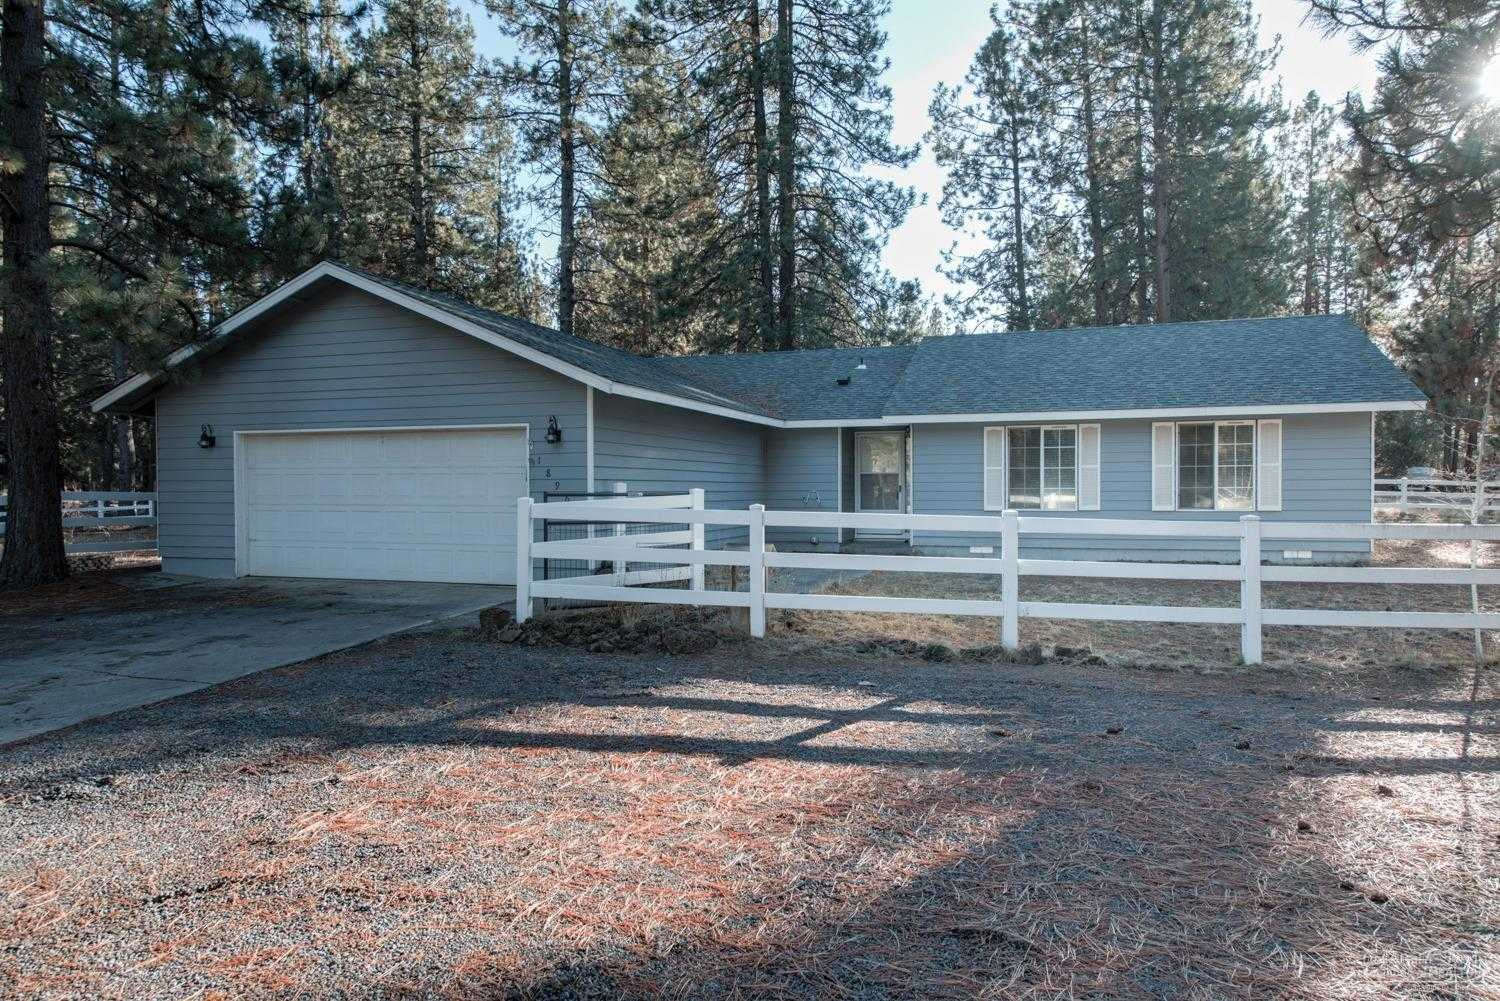 $487,500 - 3Br/2Ba -  for Sale in Bend